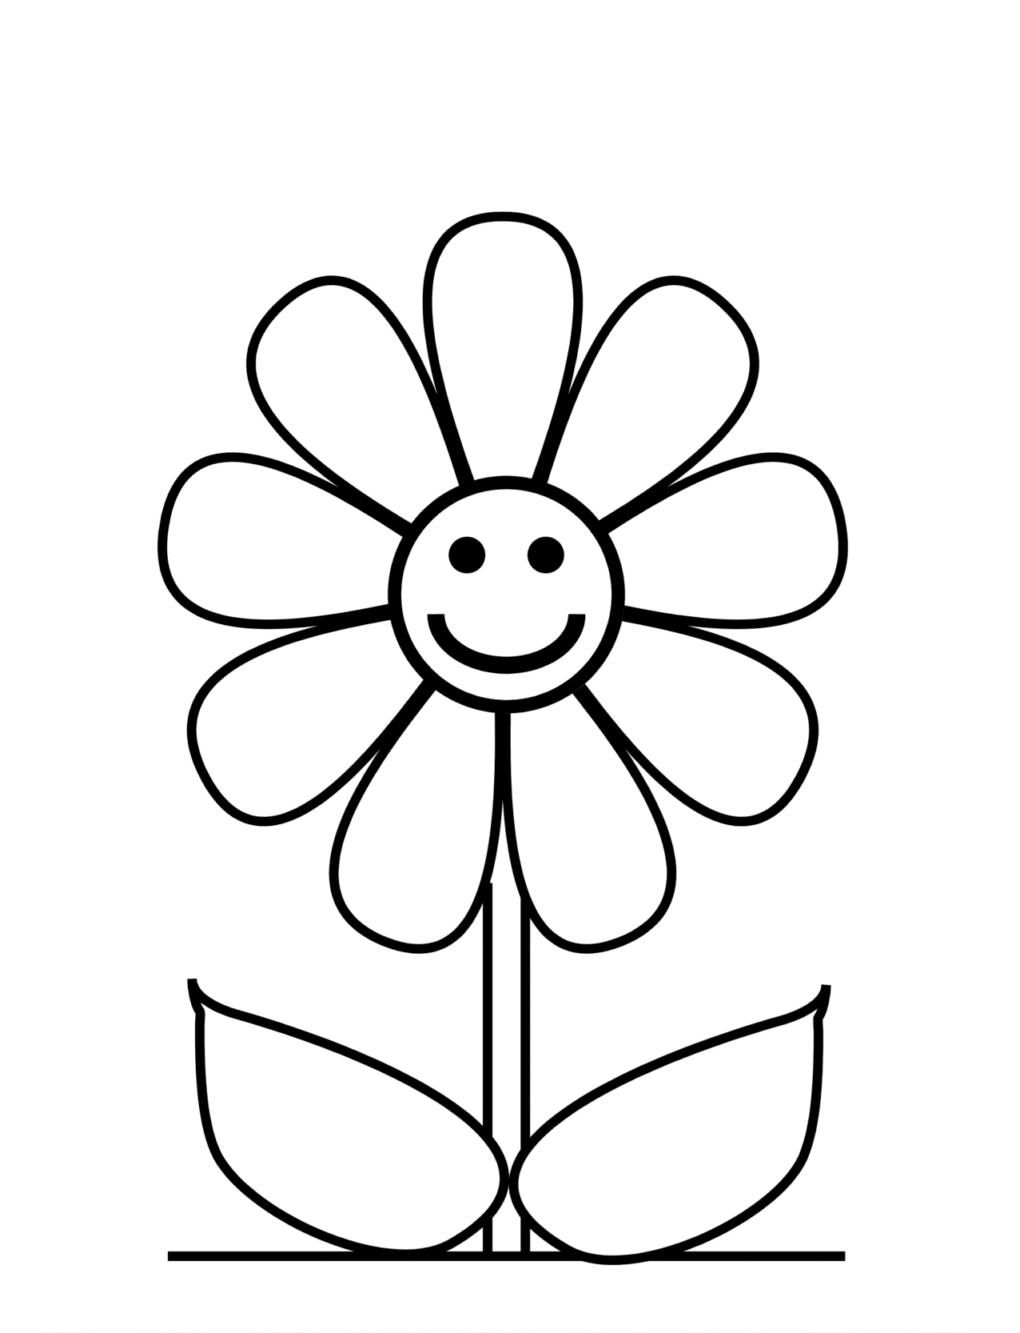 Flower coloring pages preschool - Explore Preschool Coloring Pages And More